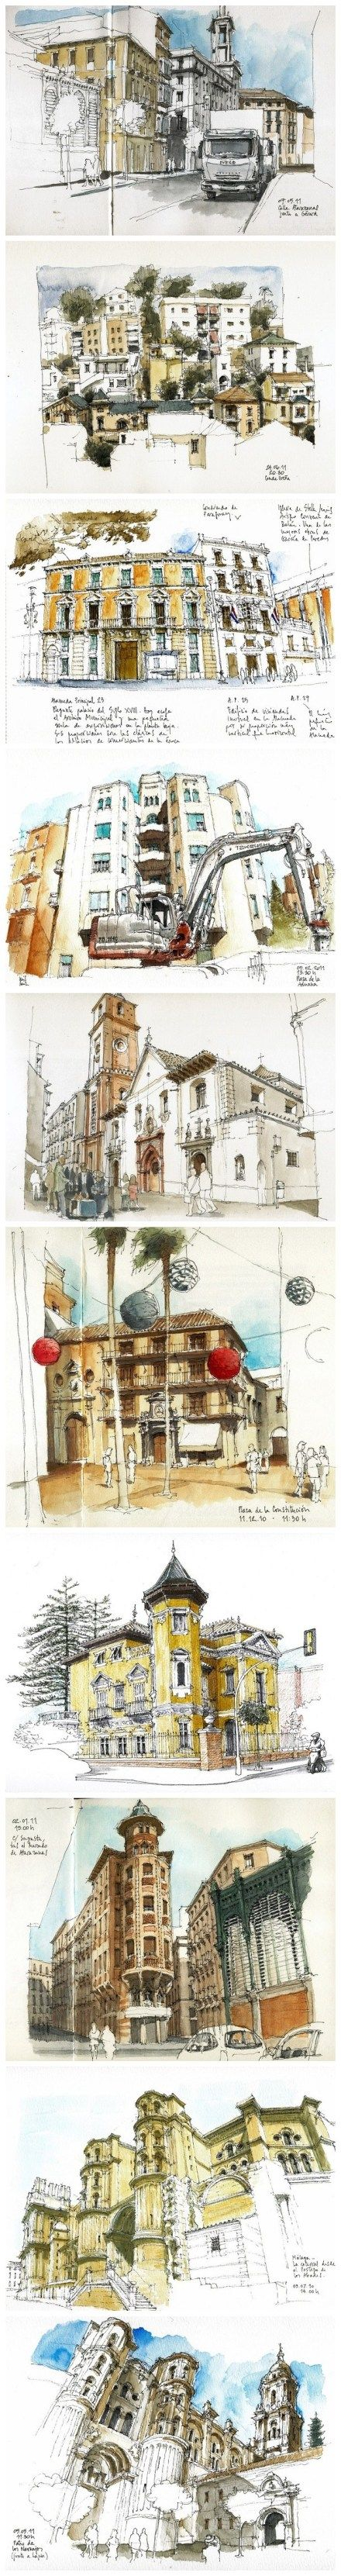 Urban sketches #illustration